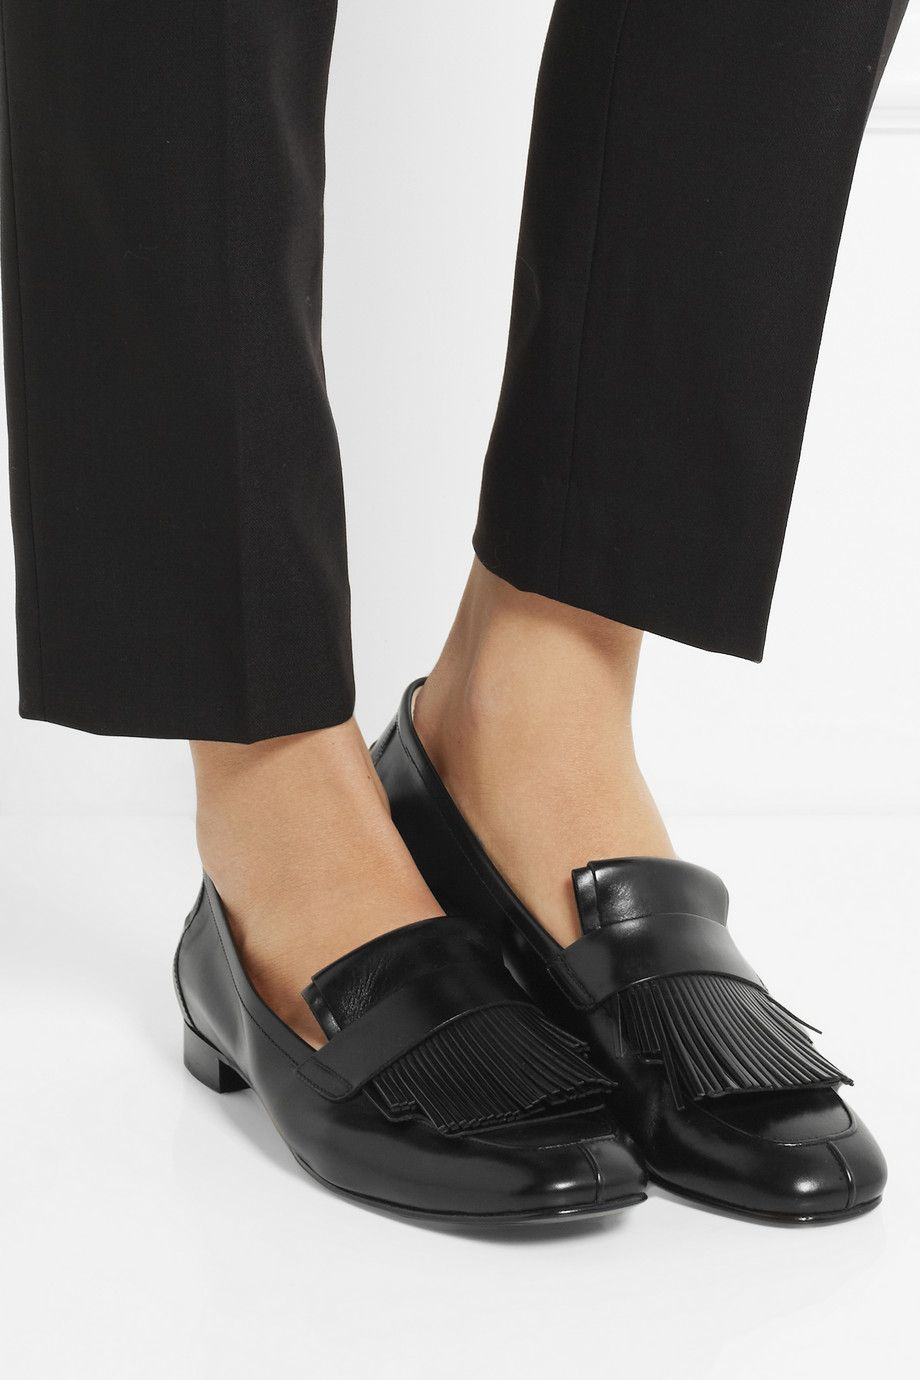 Tod's fringe trim loafers under $60 cheap online low price for sale shop cheap online AvMvl8